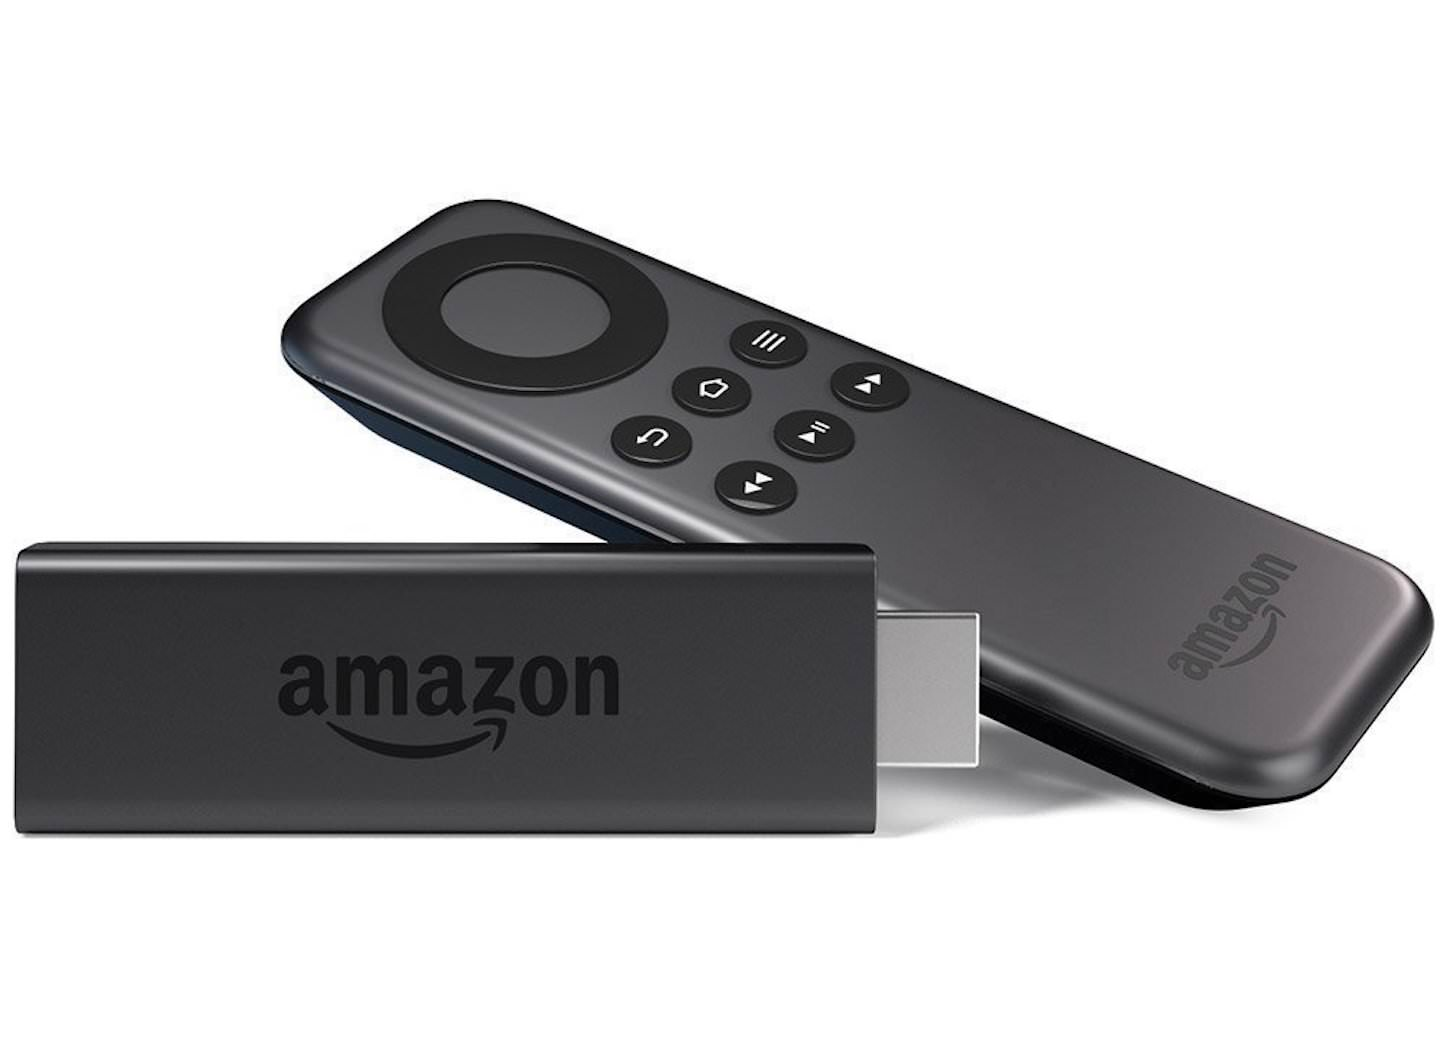 Kindle Fire TV Stick